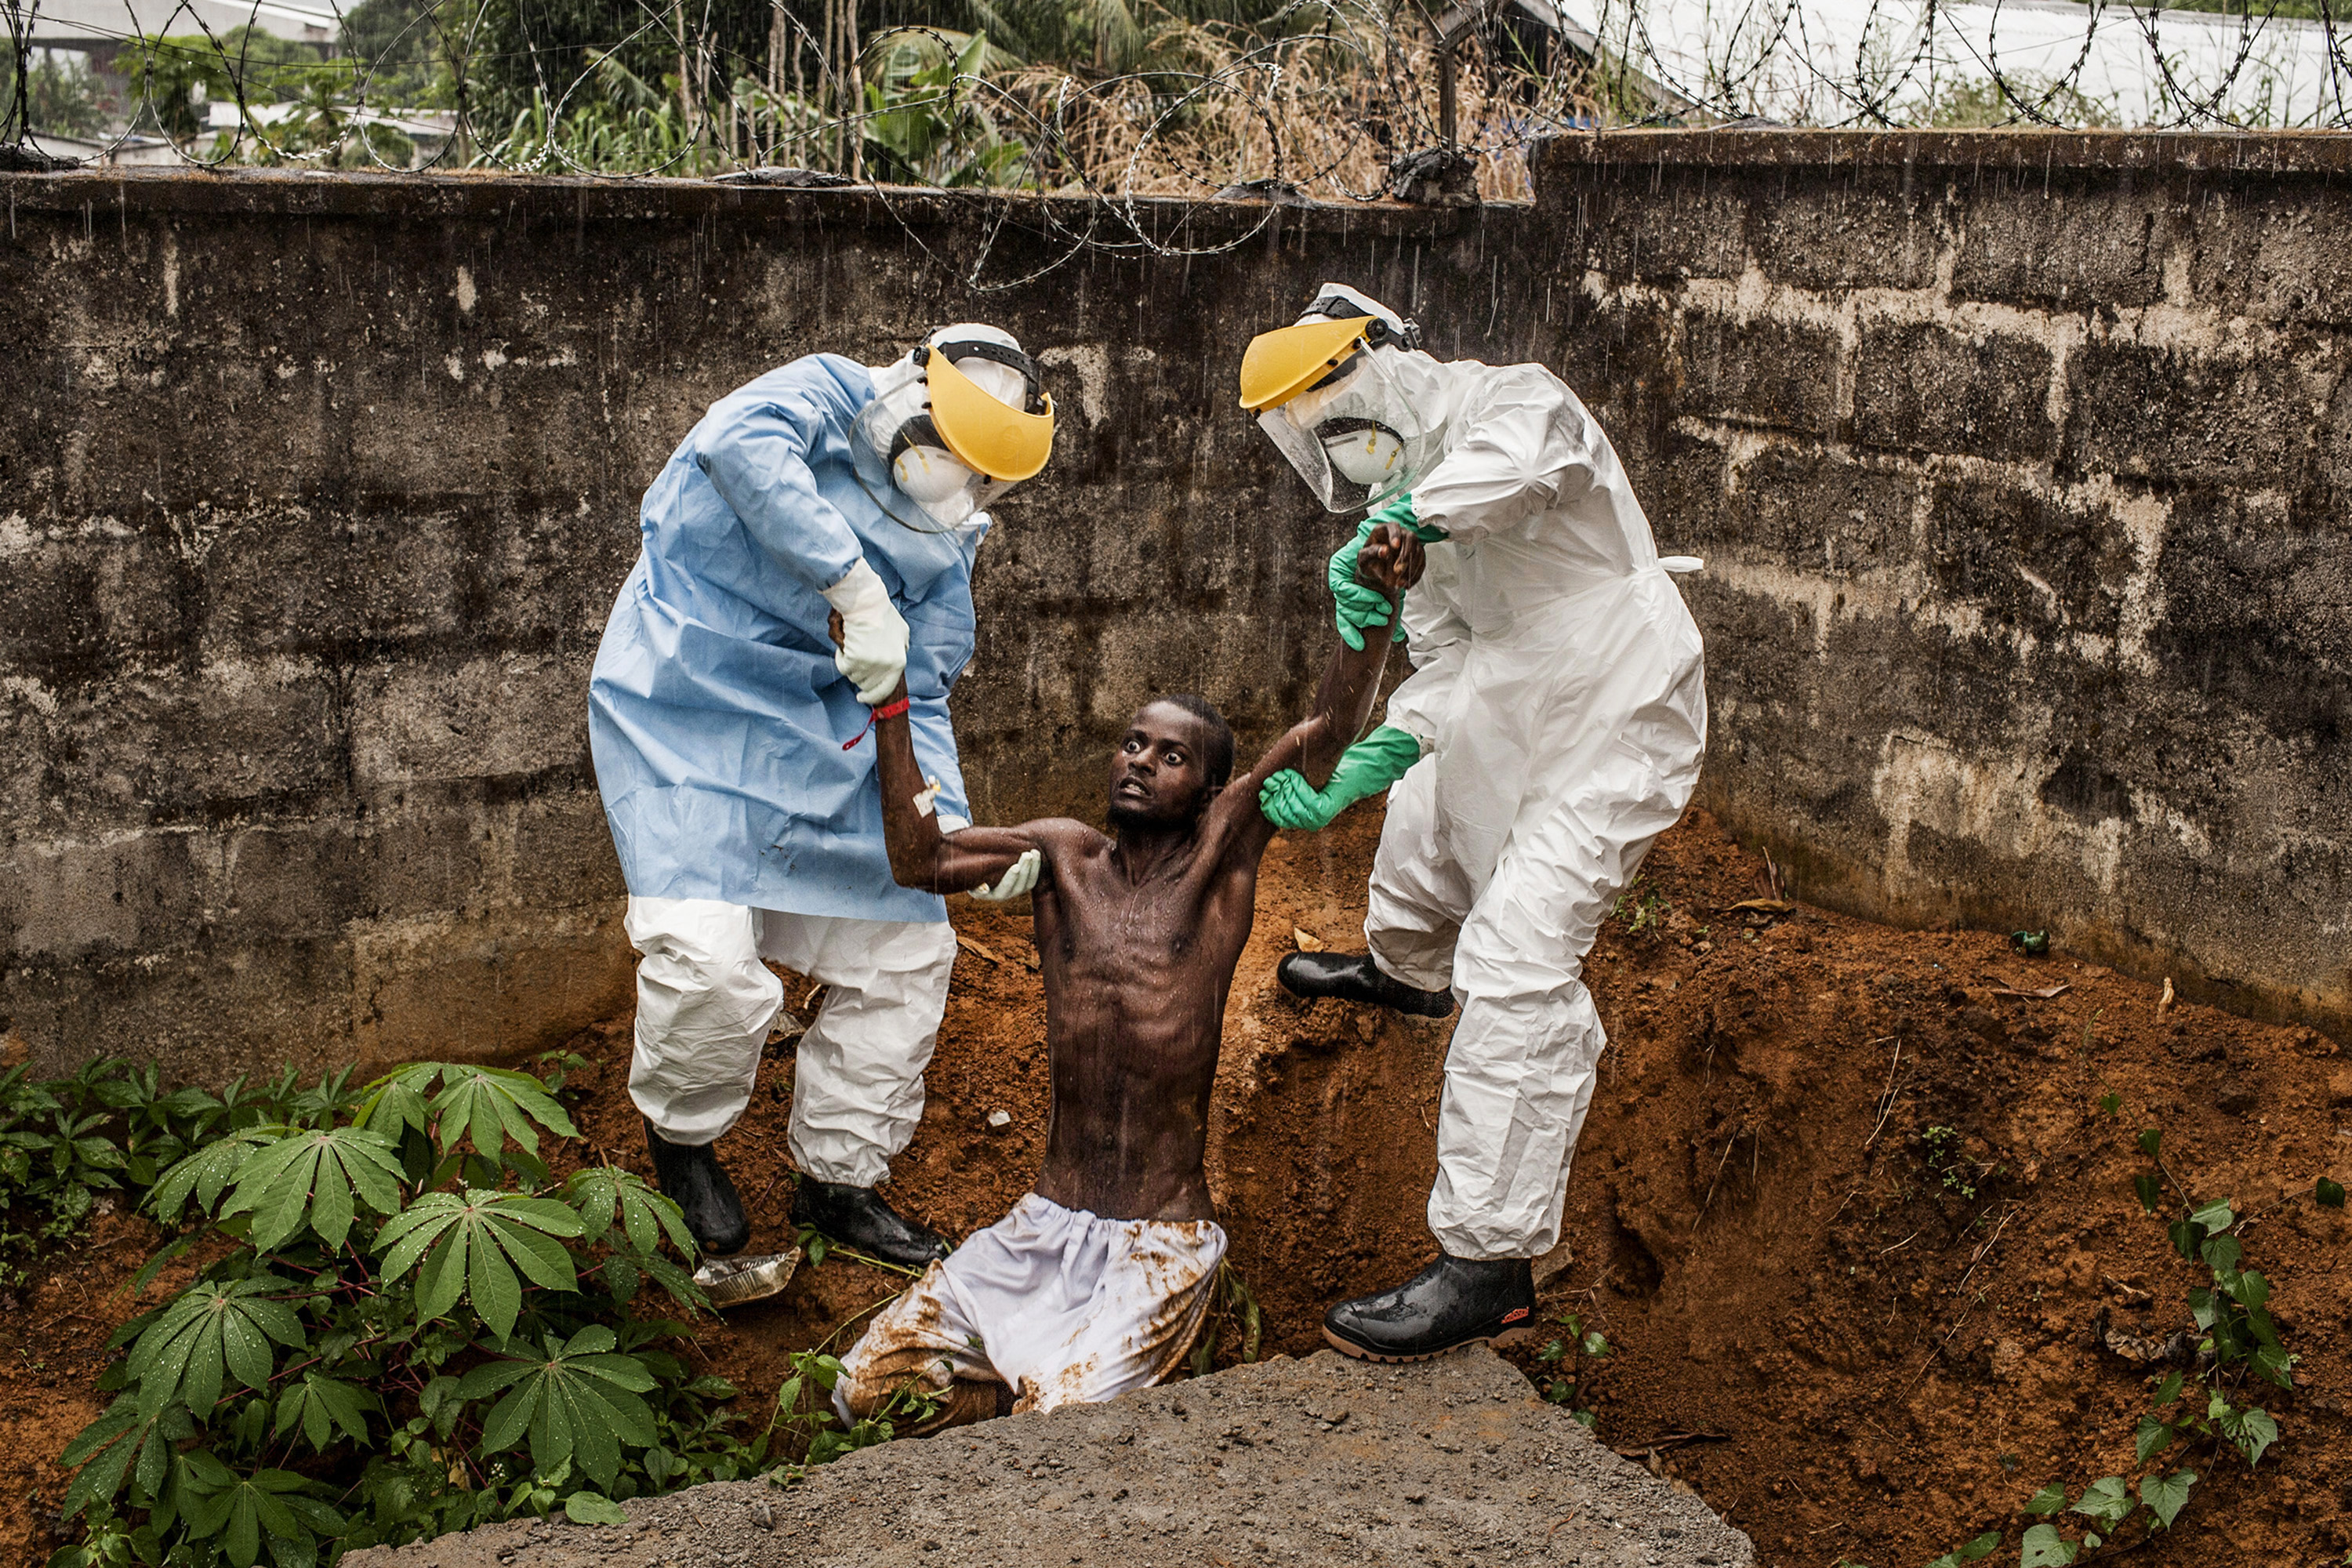 National Geographic: How Ebola Found Fertile Ground in Sierra Leone's Chaotic CapitalAt Sierra Leone's Hastings Ebola Treatment Center, staff help a man suffering from Ebola-induced delirium after he fled the isolation ward and tried to escape. Mental breakdowns are common in advanced Ebola. The man died about 12 hours later.